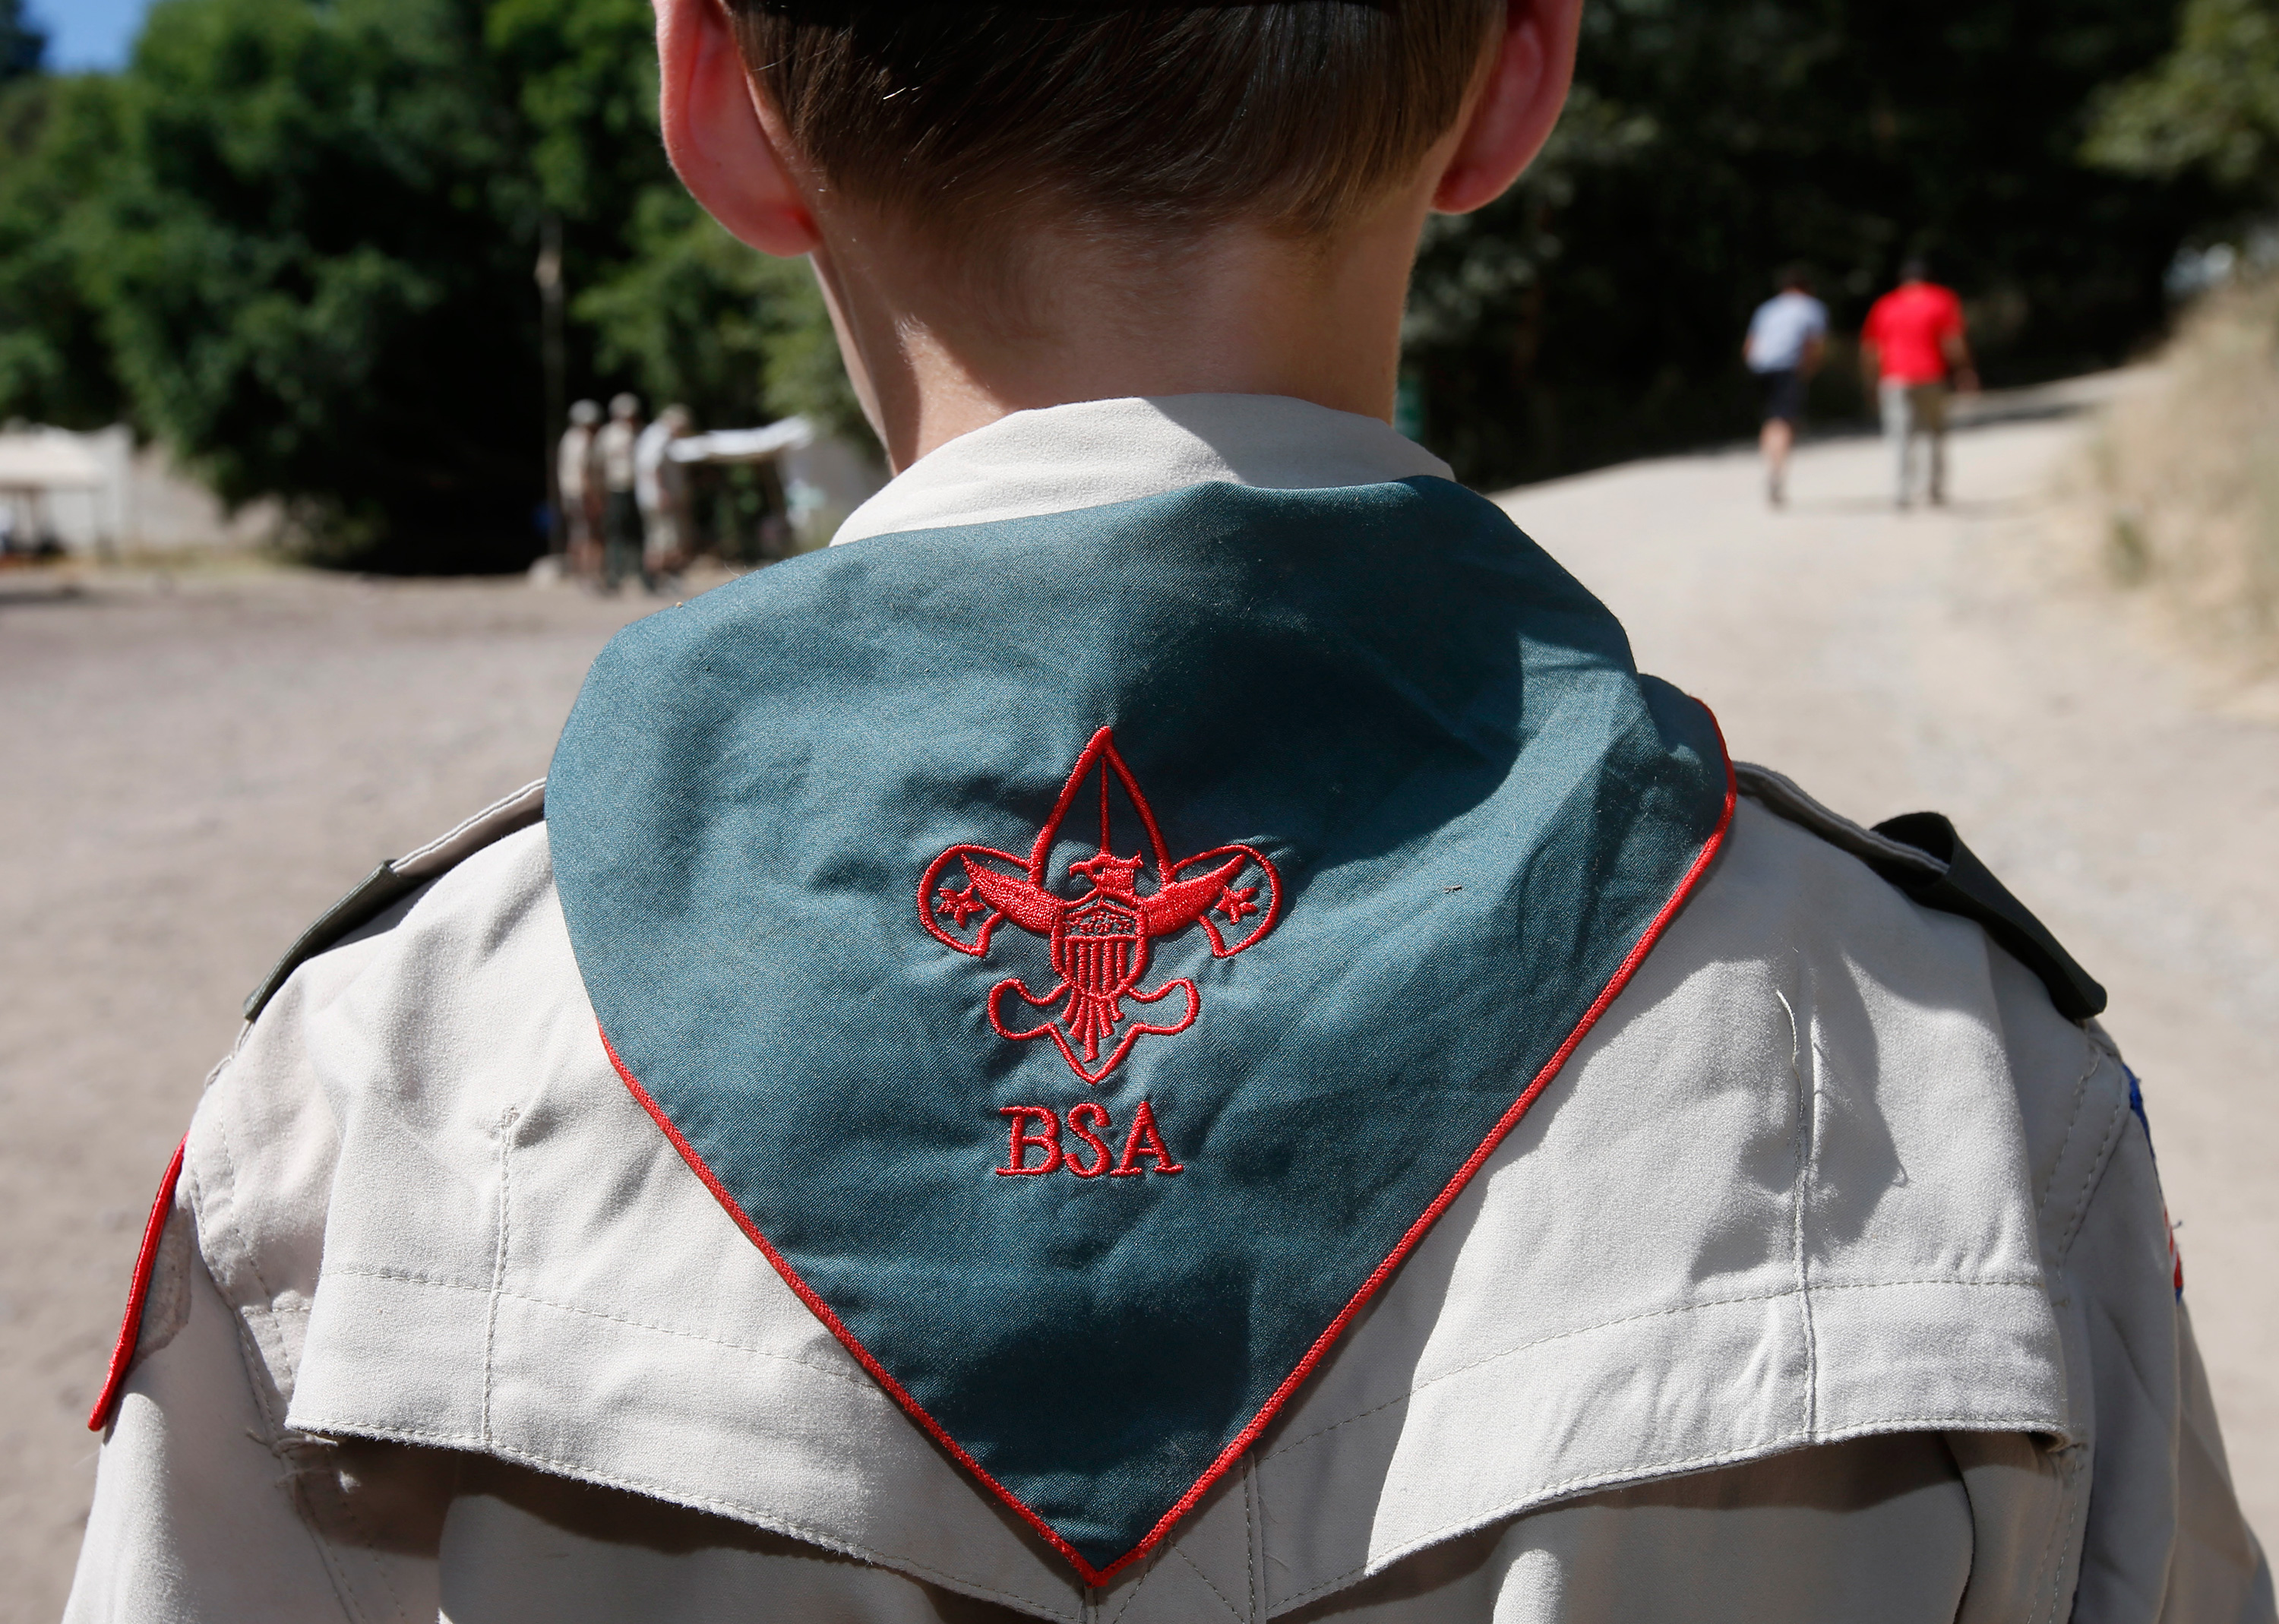 Boy Scouts of America shows support for Black Lives Matter and will require some scouts to earn diversity badge